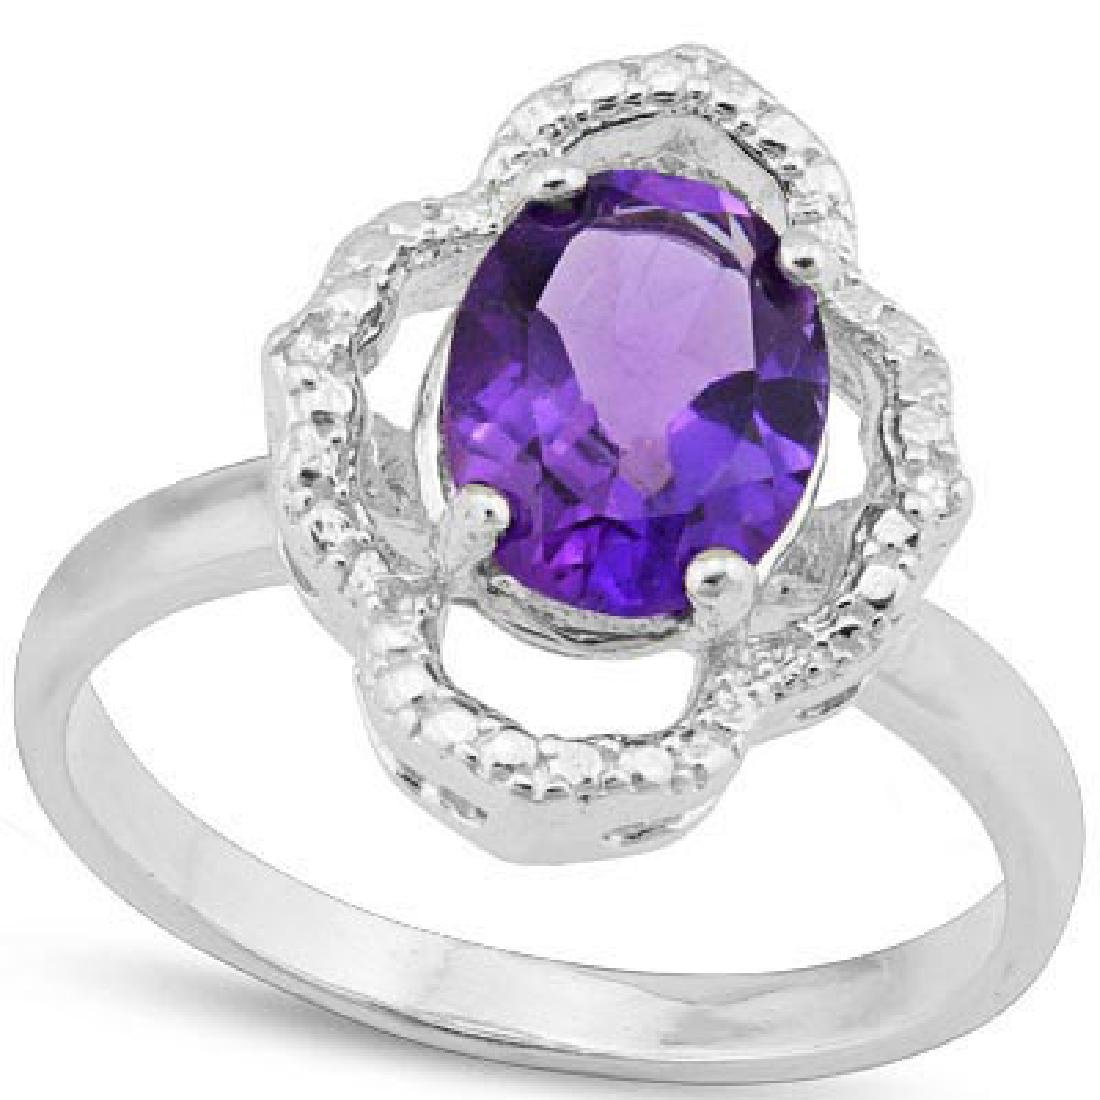 1.682 CARAT TW AMETHYST & GENUINE DIAMOND PLATINUM OVER